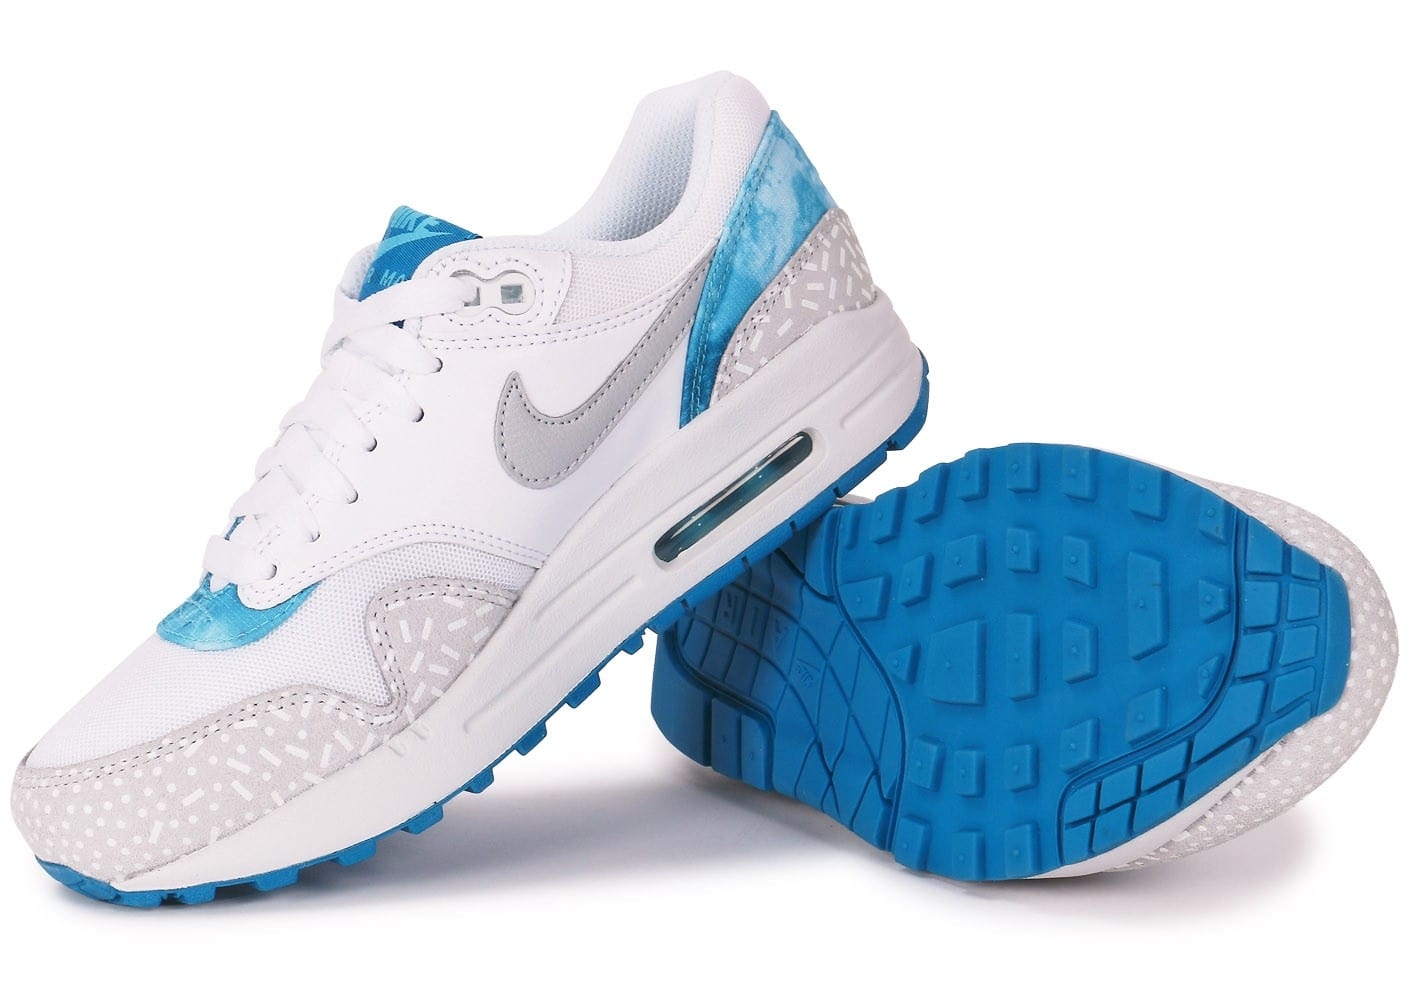 Chaussures Nike Bleu Turquoise